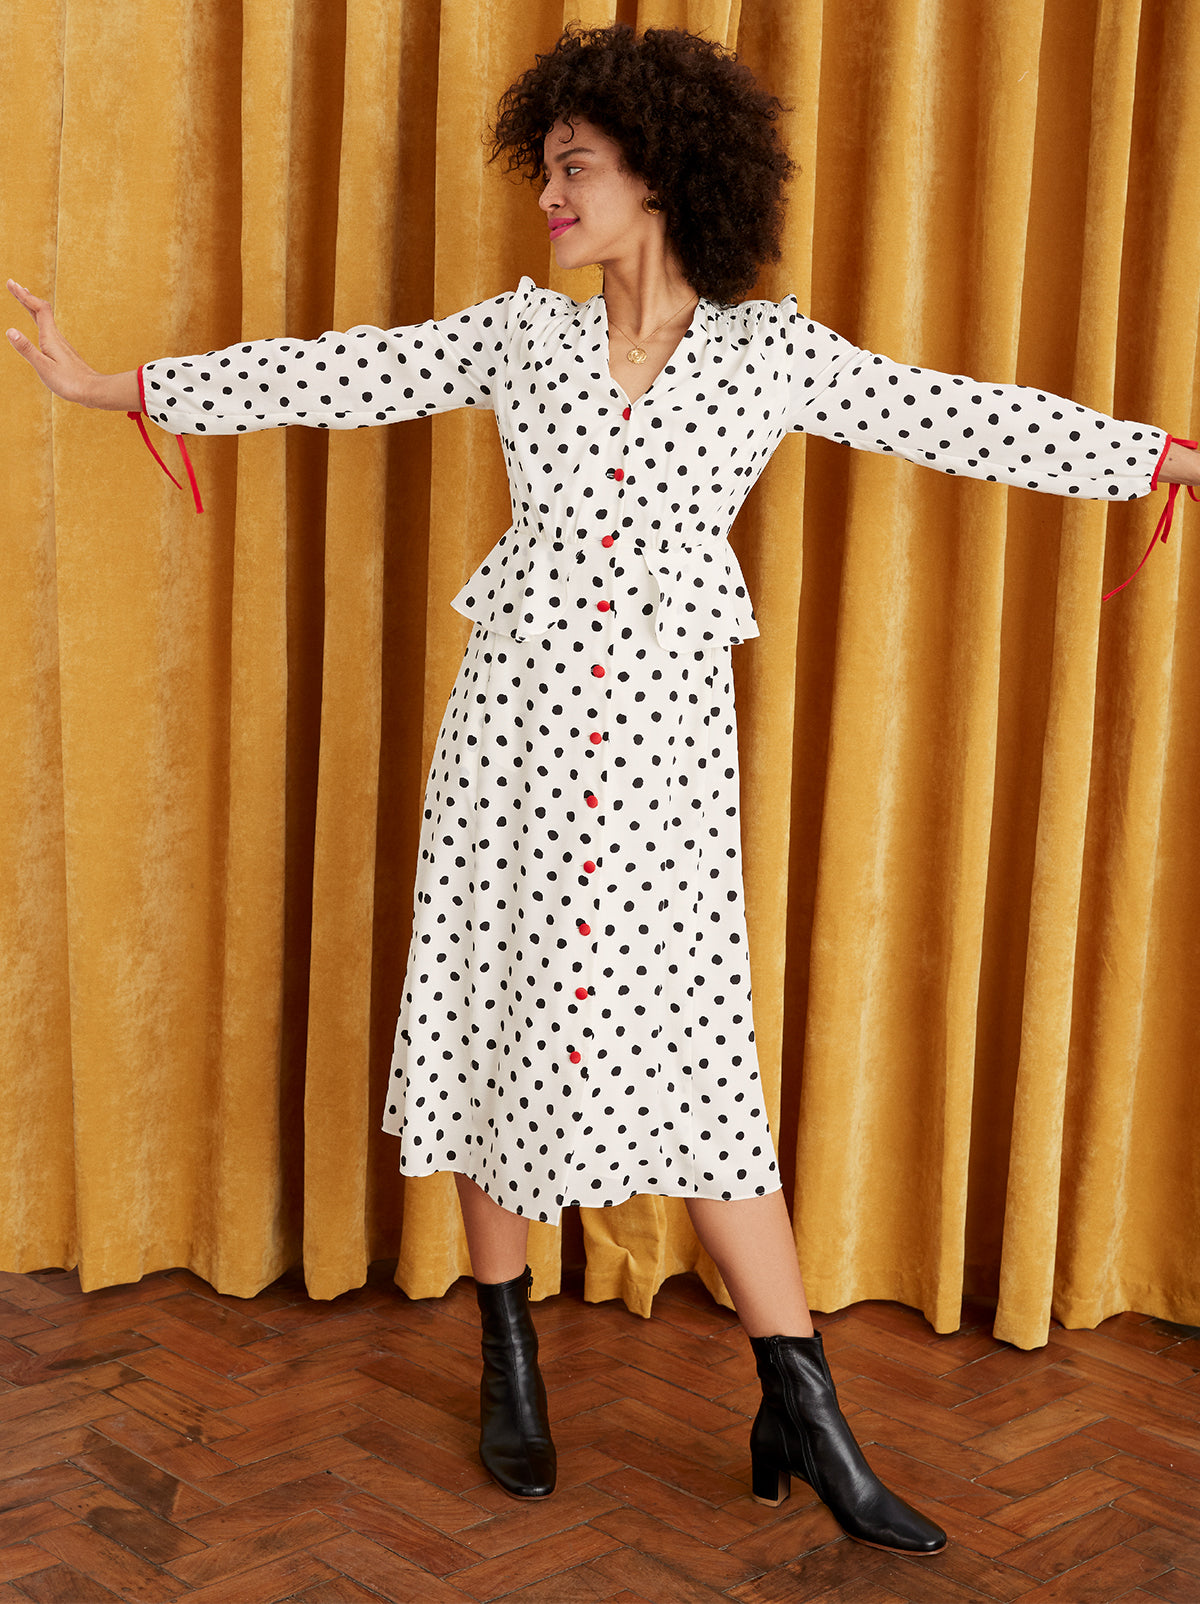 b37c388eaab7 ... Lana White Polka Dot Dress by KITRI Studio ...